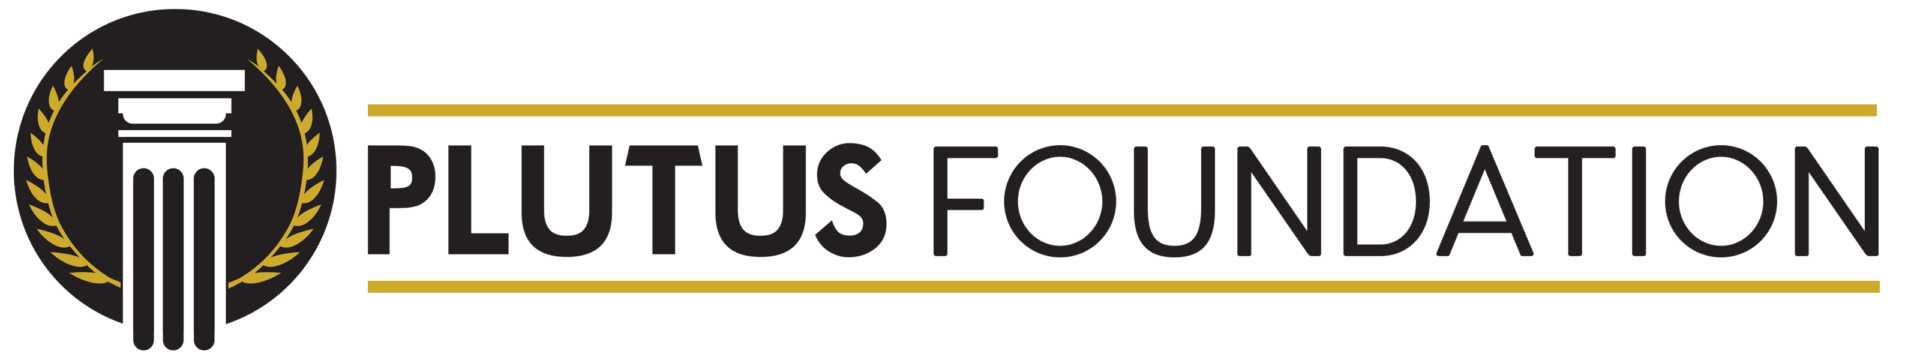 The Plutus Foundation